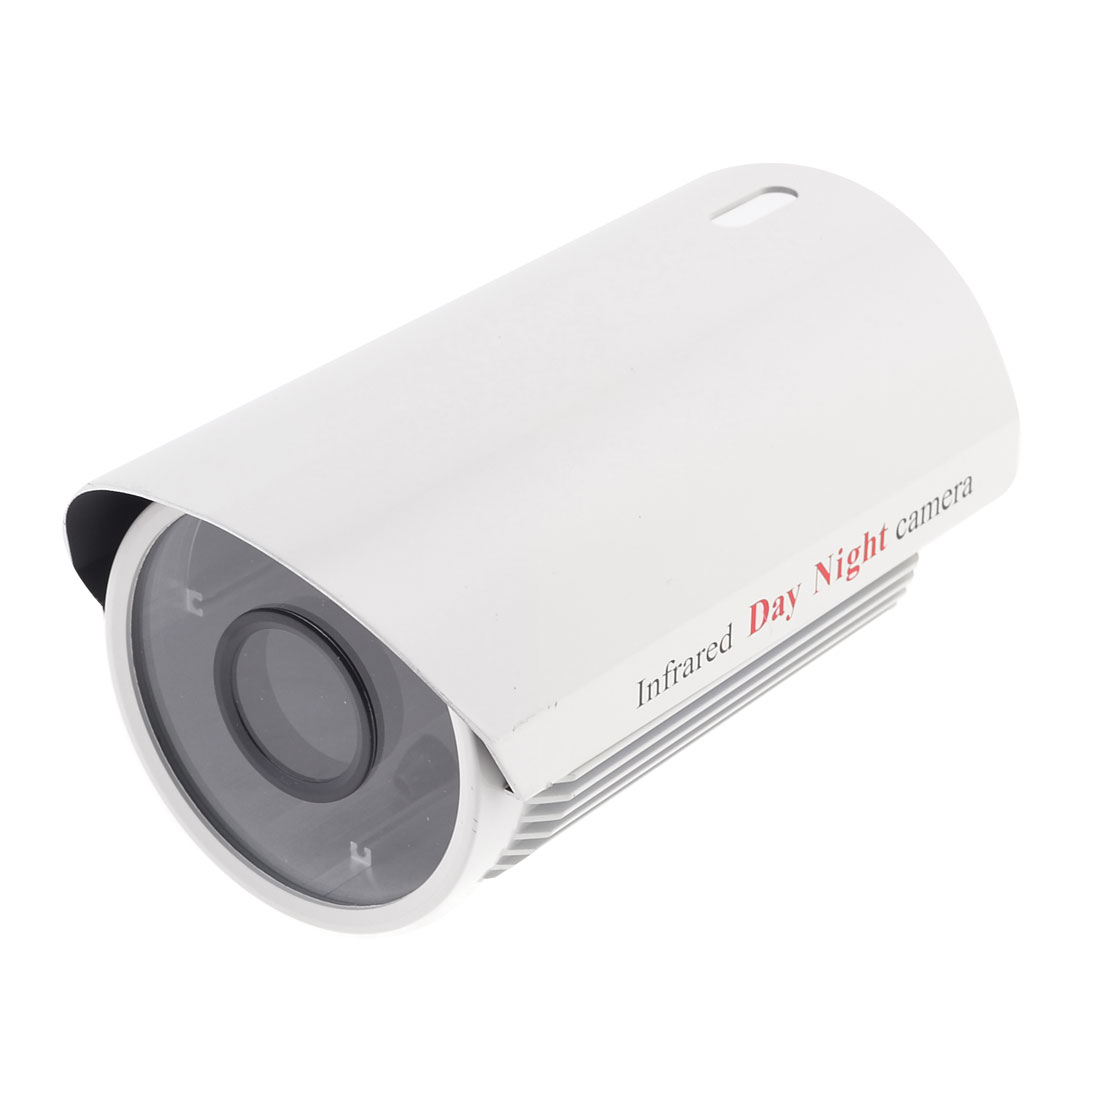 """6.5"""" x 3"""" x 3"""" Metal Water Resistant Housing Case Off White for CCTV Camera"""